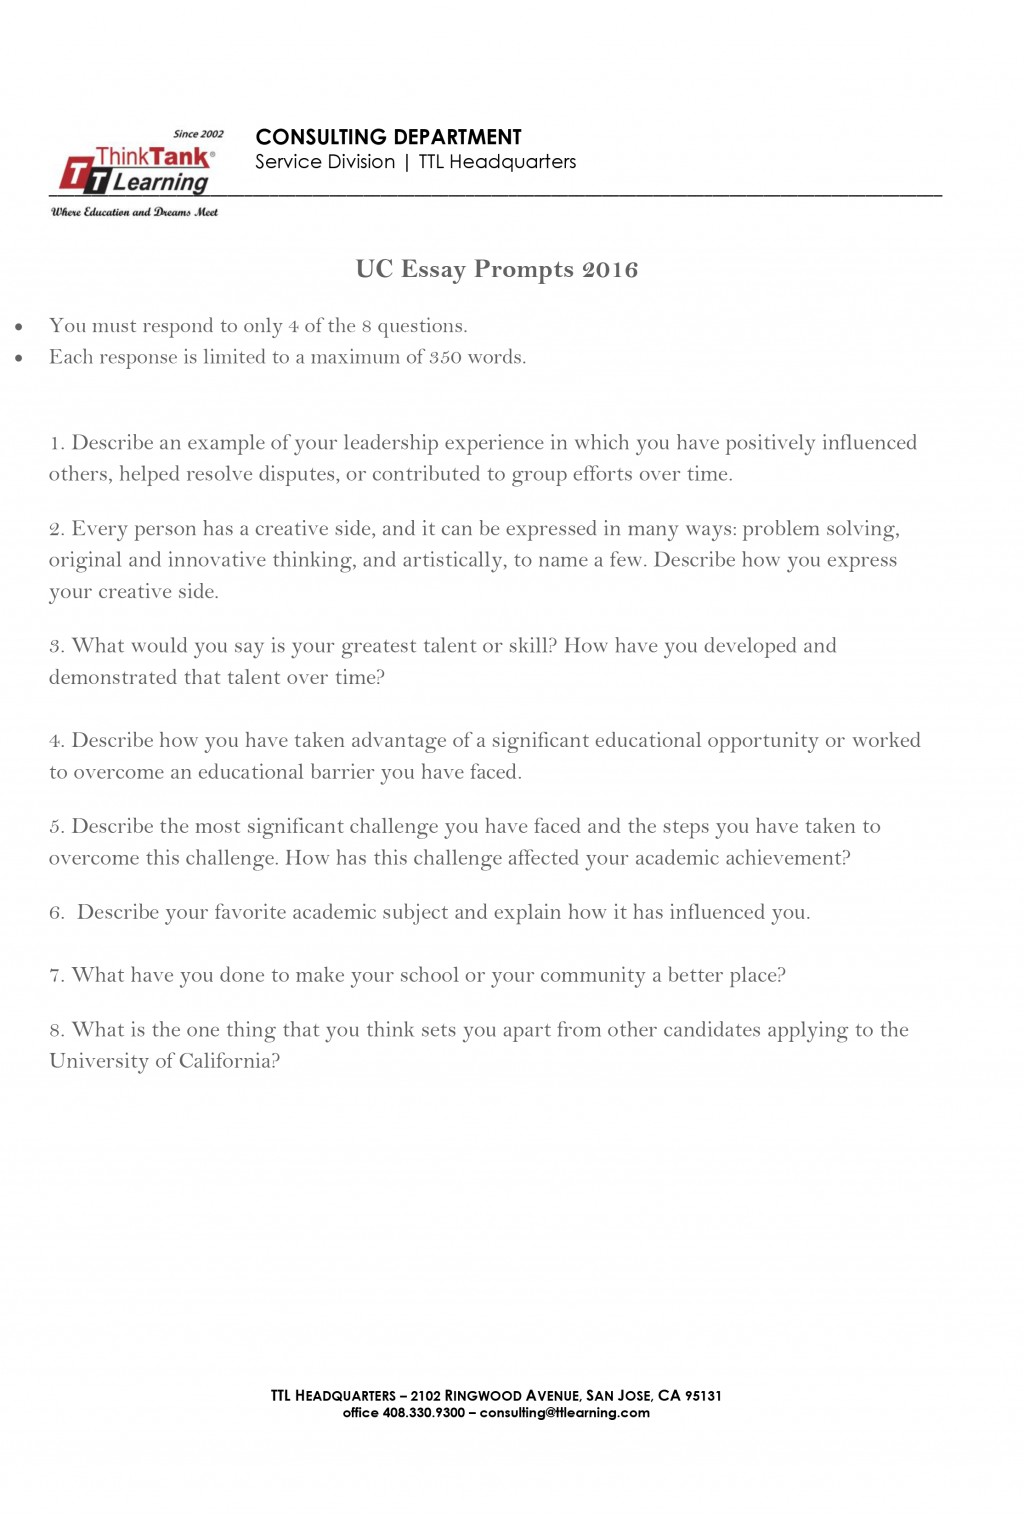 001 Think Tank Essay Uc Prompts 2016 2 Top Large